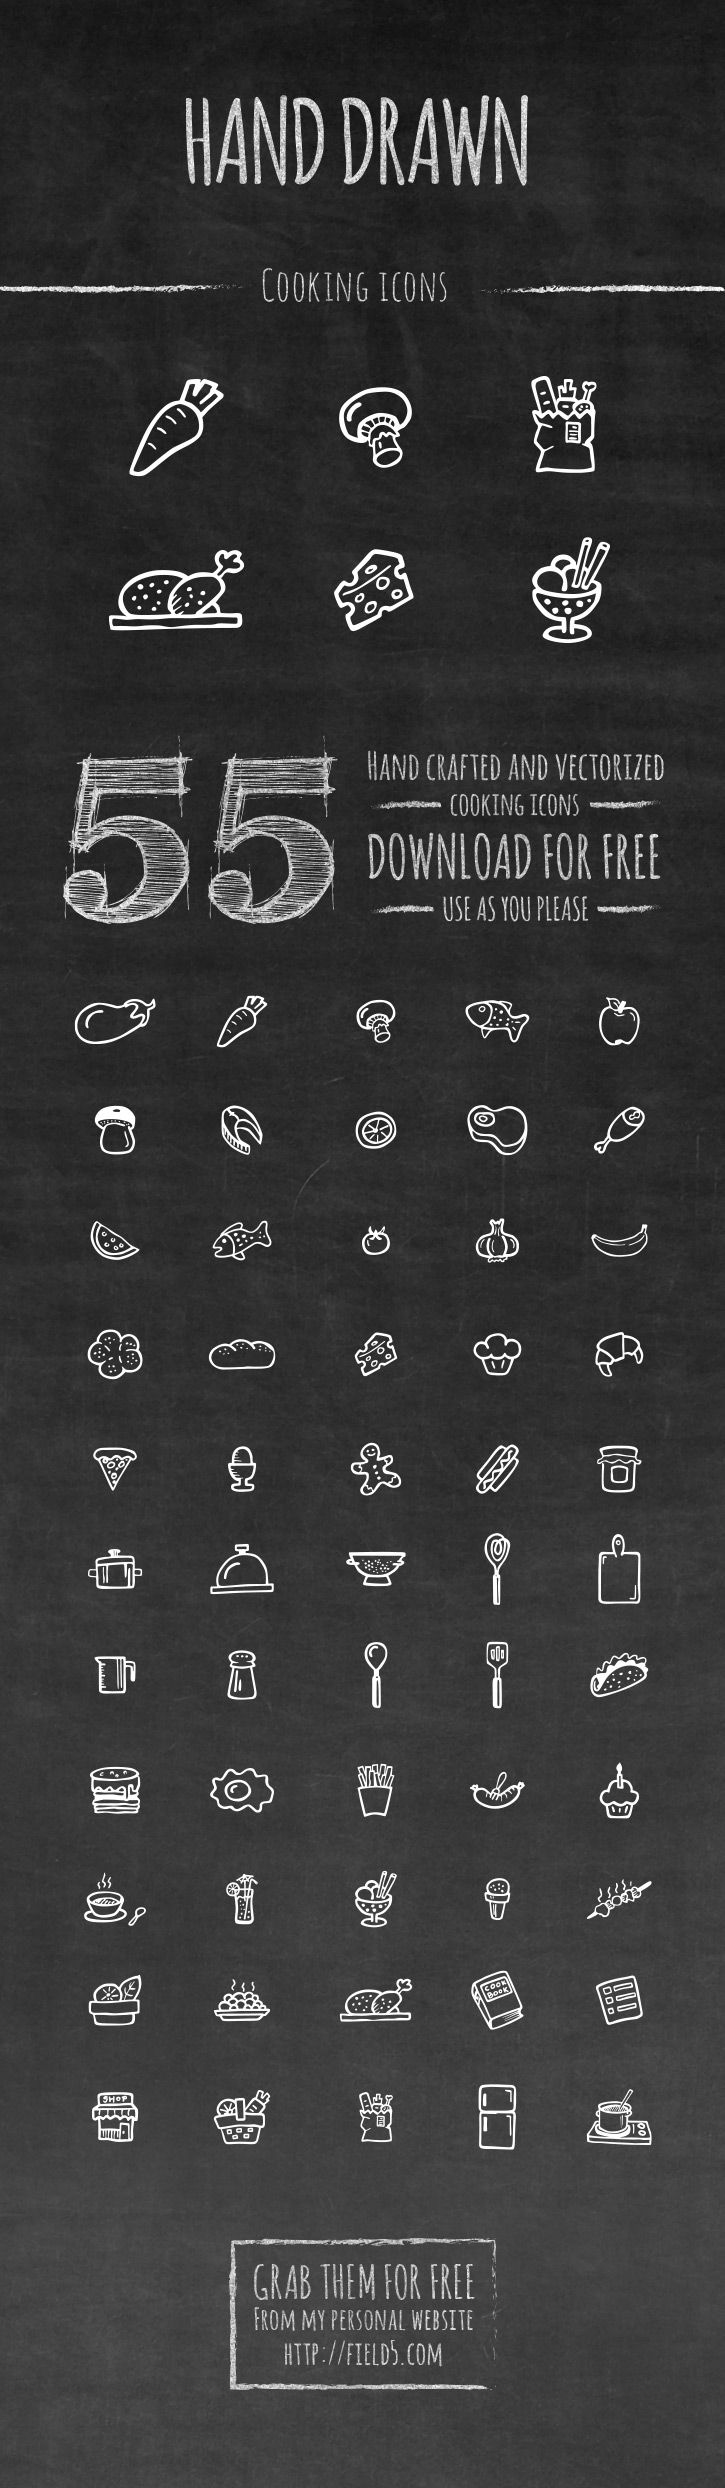 Free cooking icon set | Field 5 Agata Kuczminska - Web design - Freelance web designer